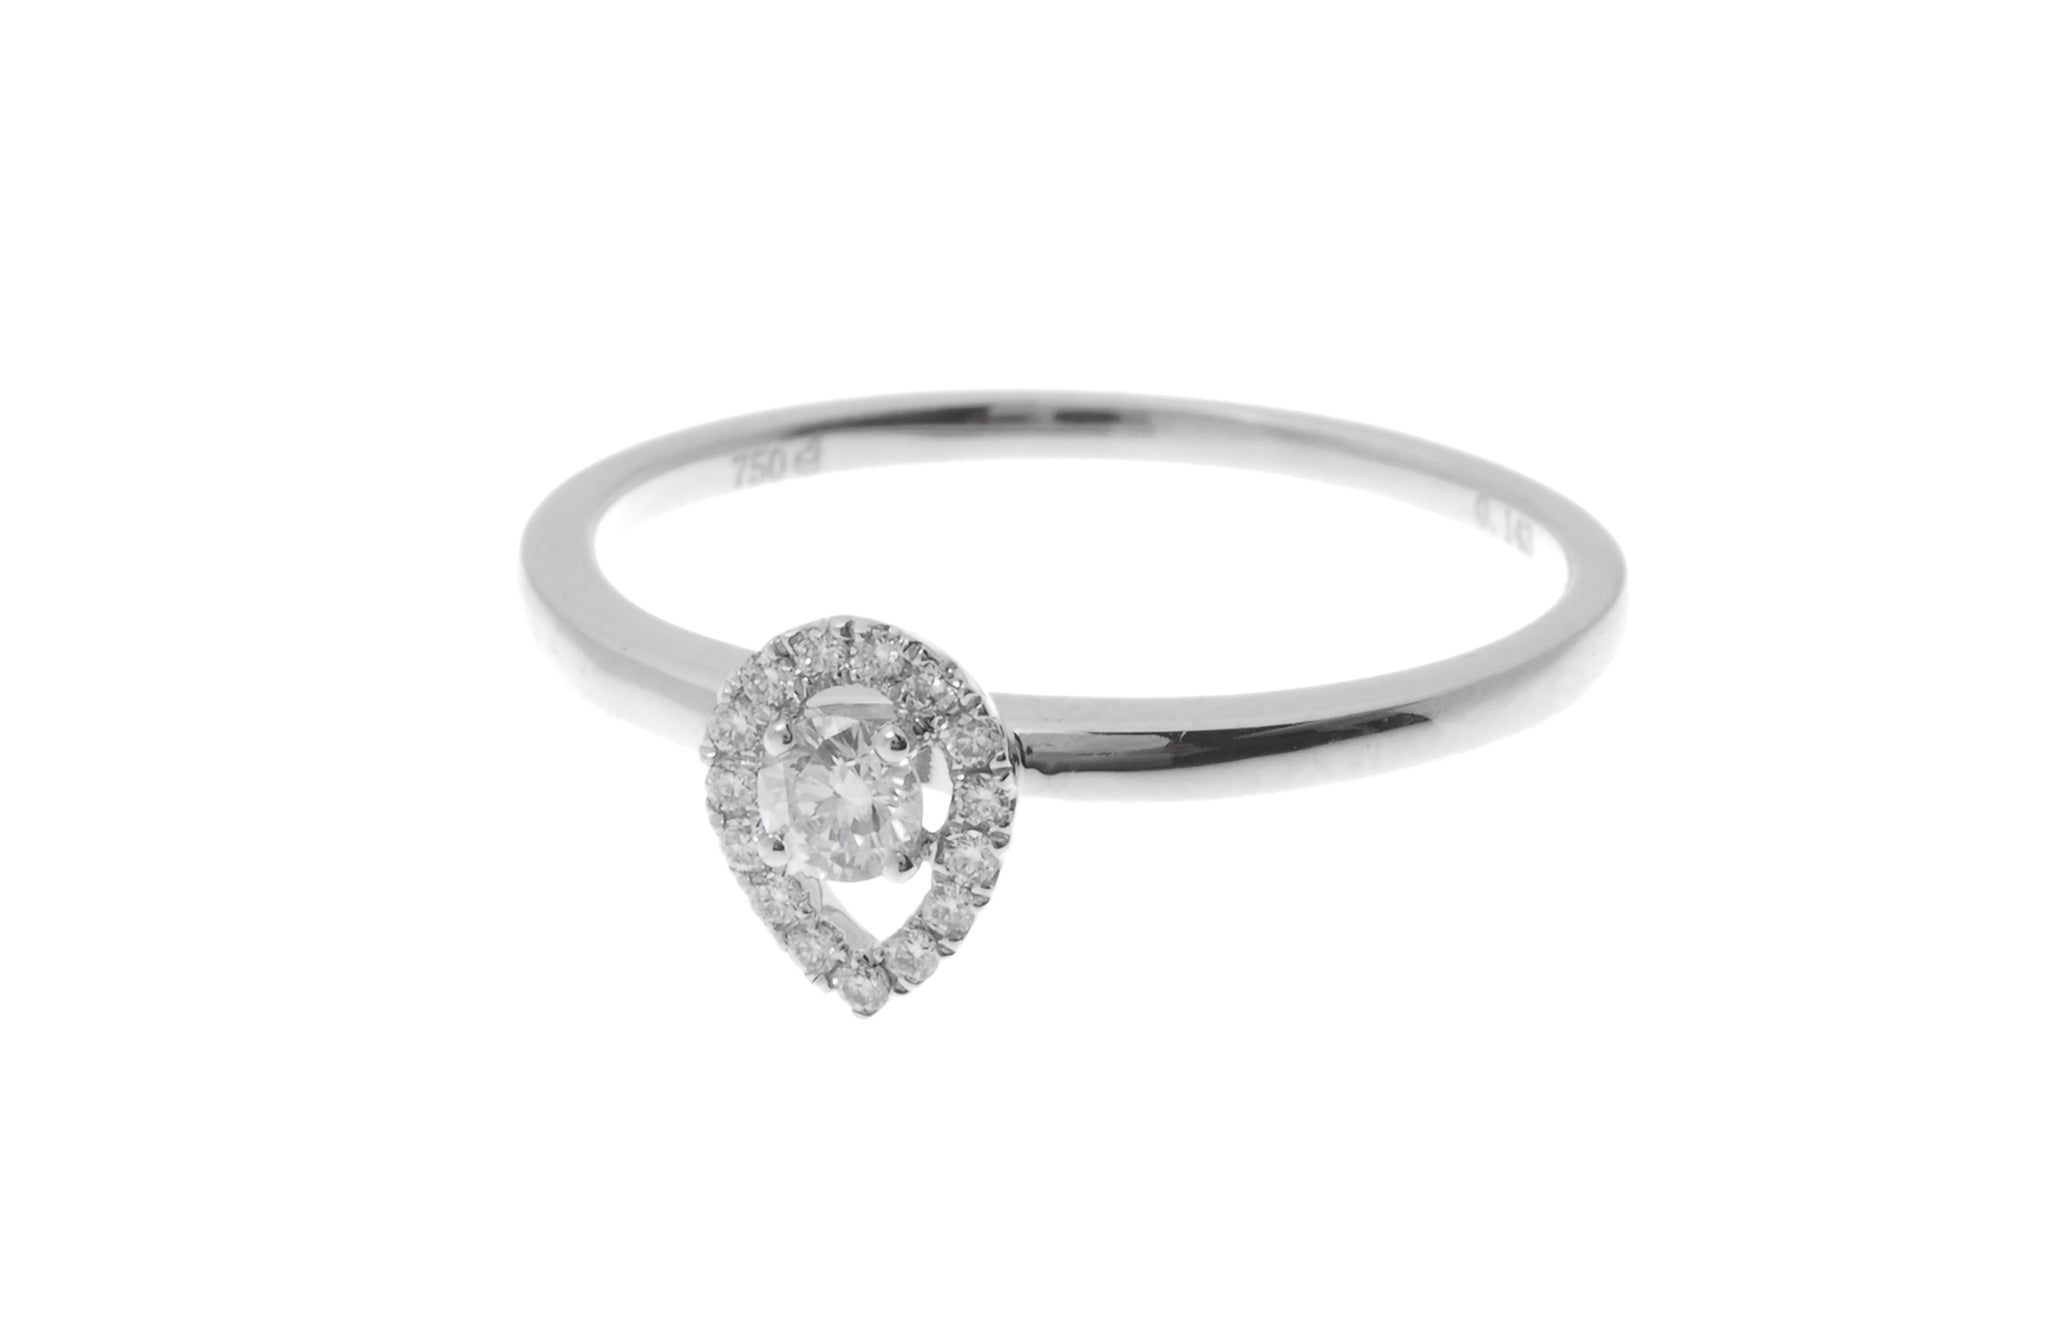 18ct White Gold Diamond Dress Ring (R32455-3021)